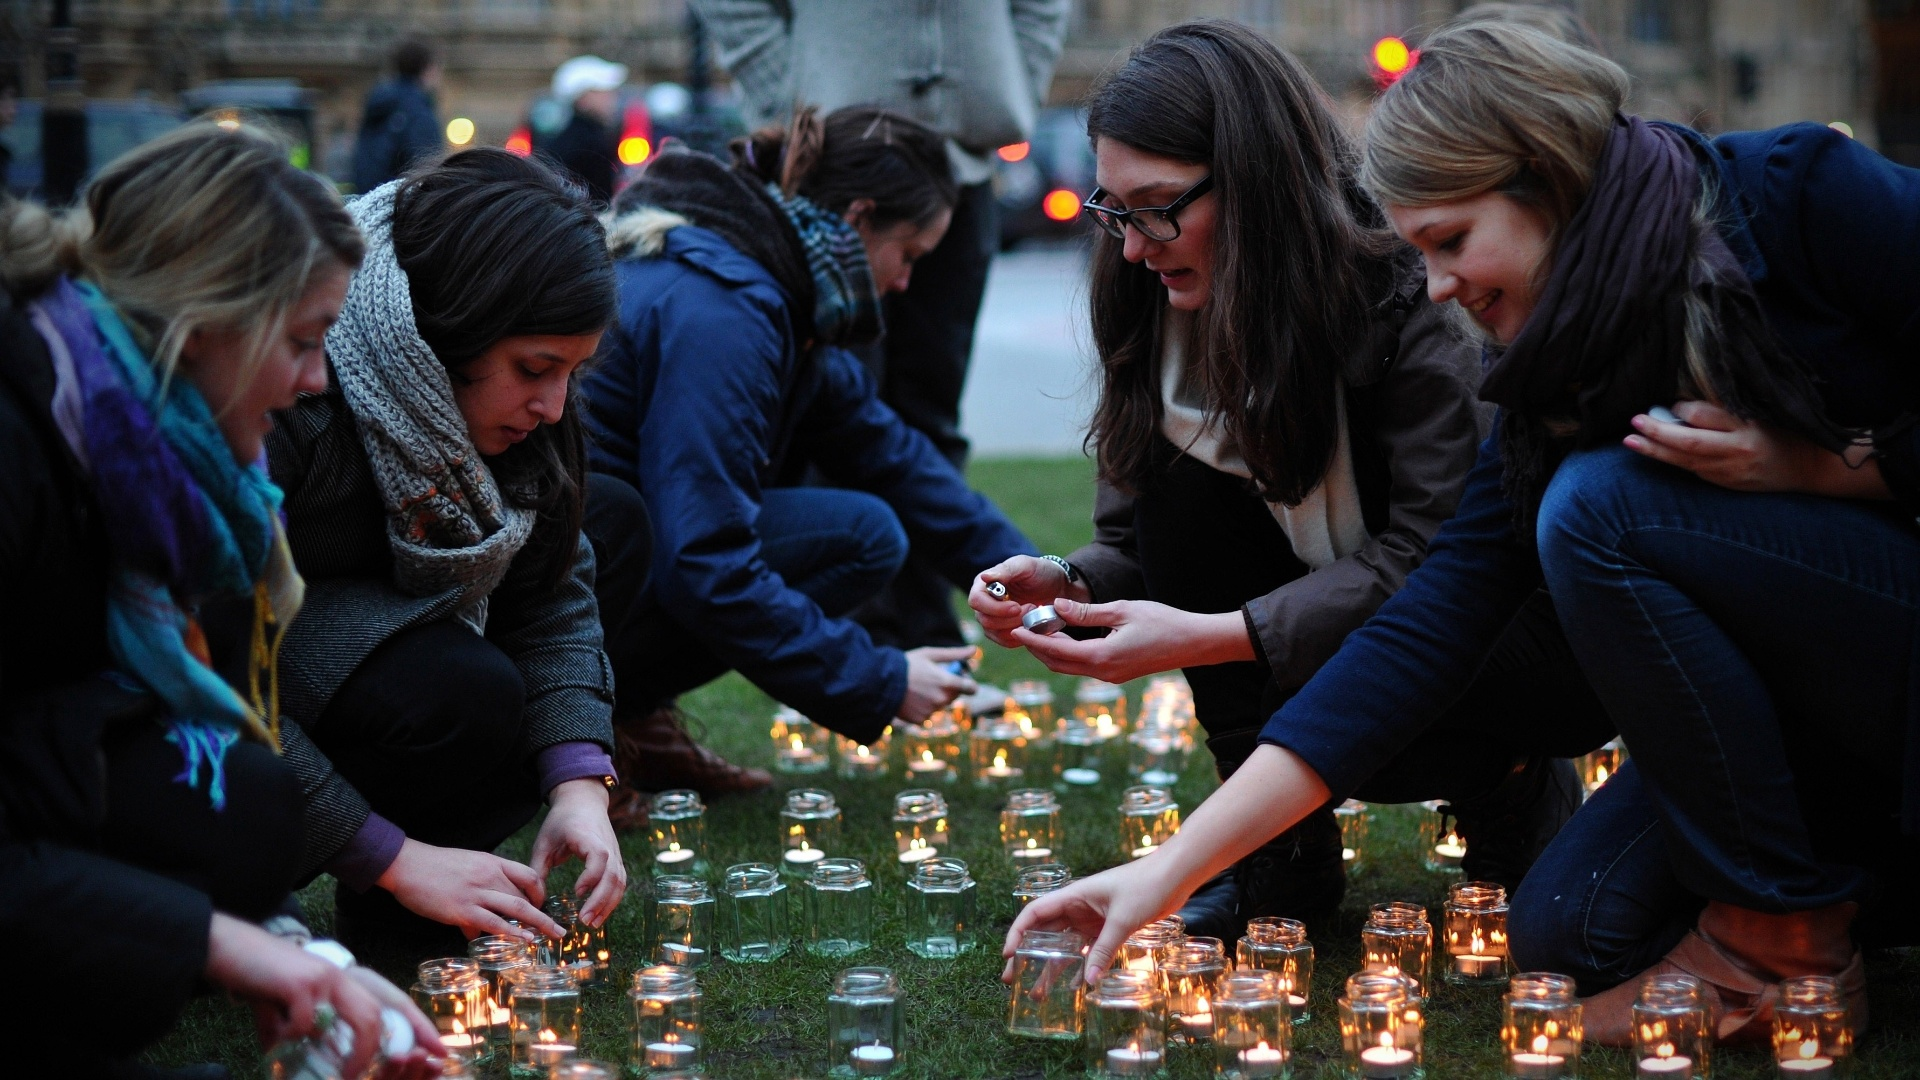 15.mar.2013 - Mulheres acendem velas no centro de Londres, no Reino Unido, em ao mundial da ONG Save the Children na noite desta quinta-feira (14).  A vgilia, que ocorreu em 20 cidades diferentes, lembra os dois anos de levante popular contra o regime de Bashar Al-Assad